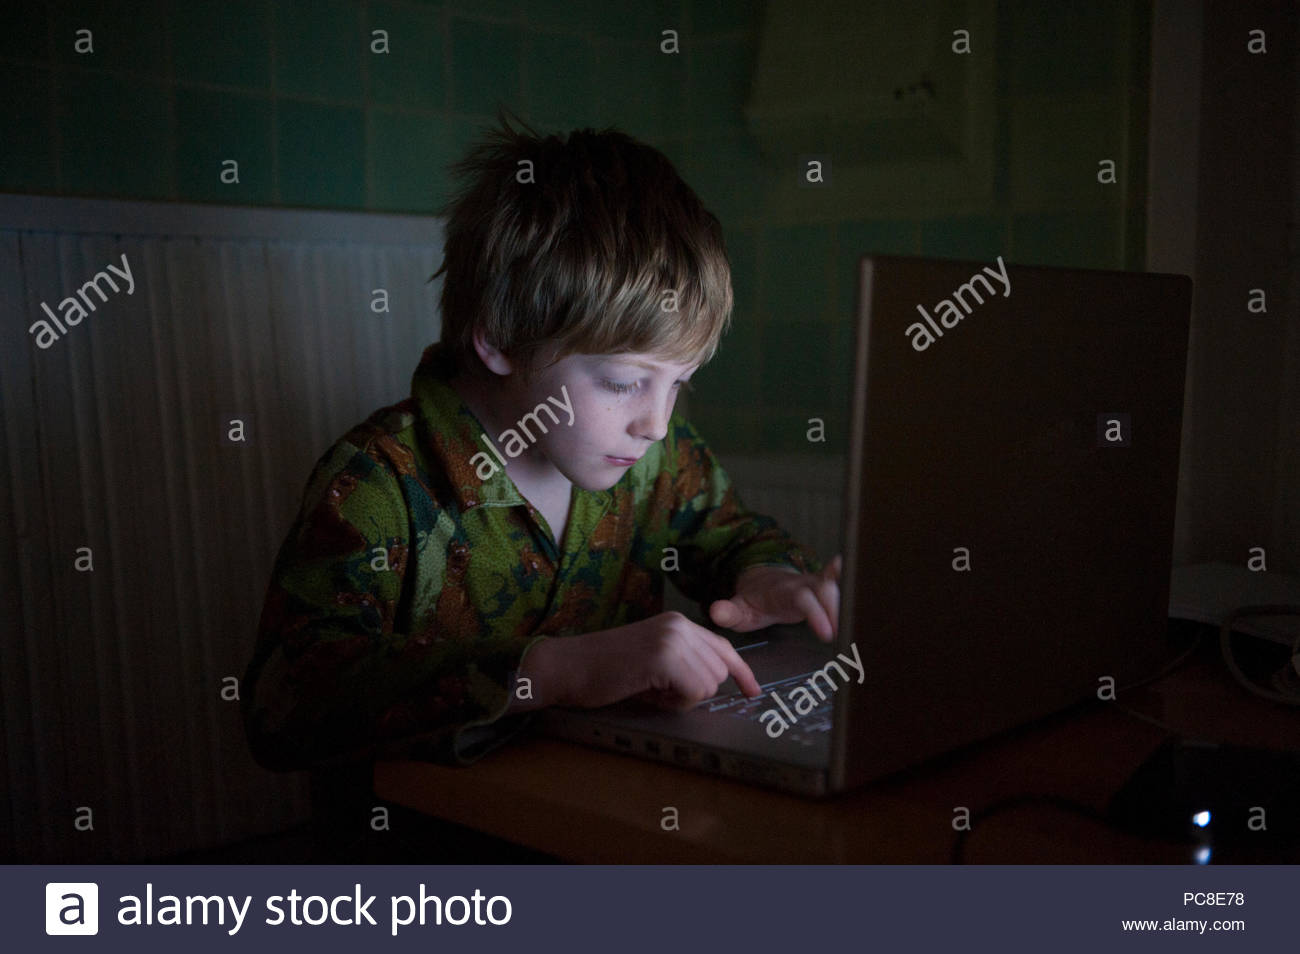 A 7-year-old boy stays up late playing computer games. - Stock Image